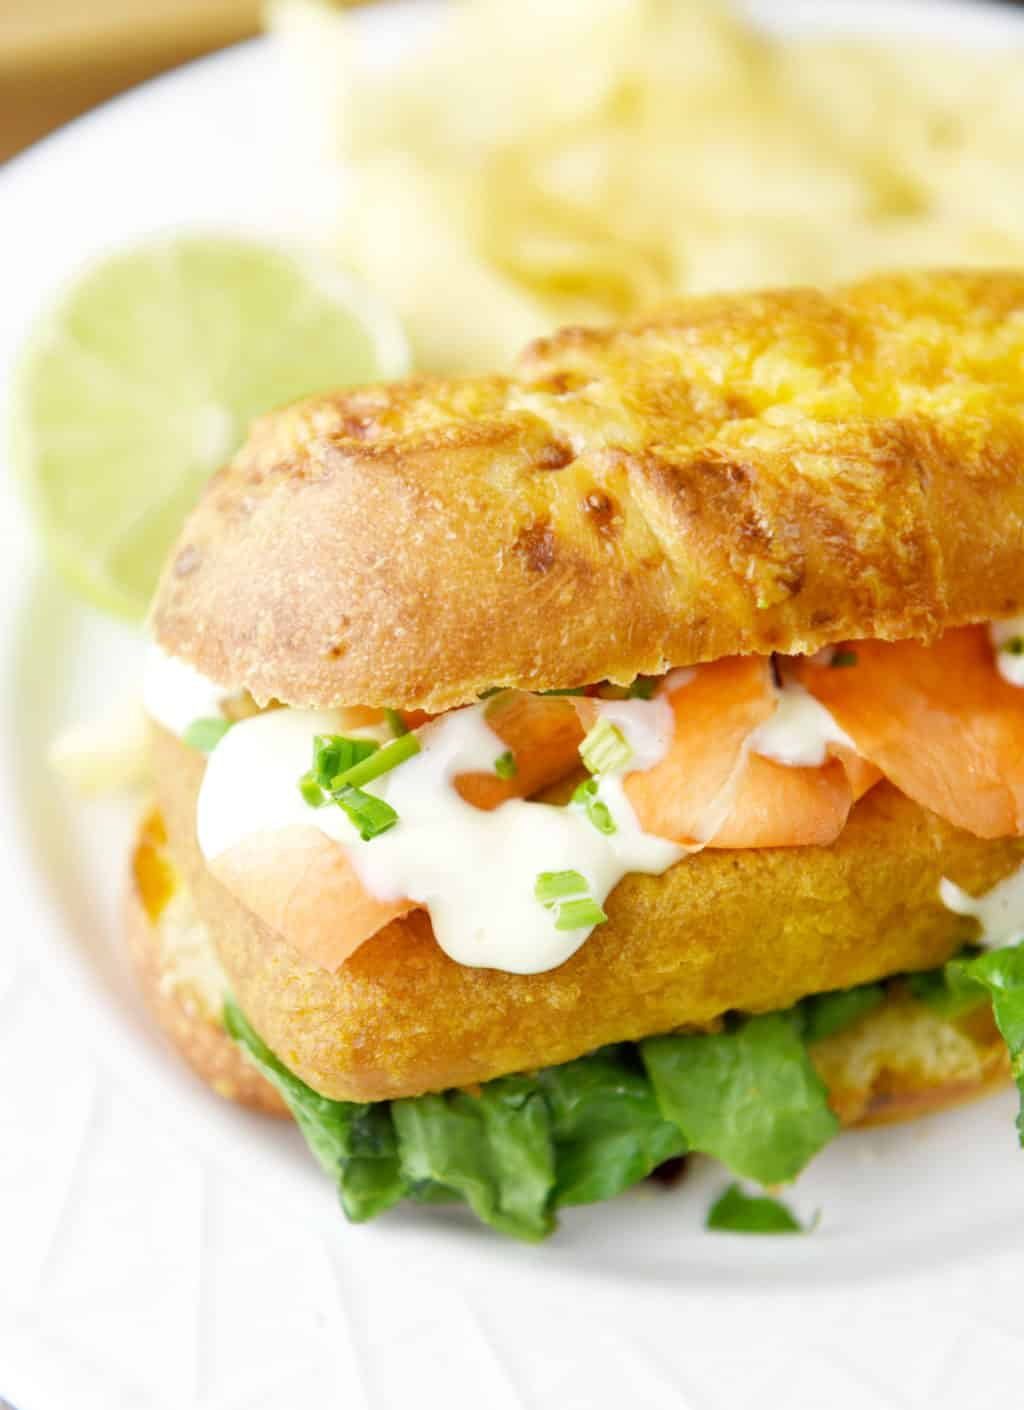 Pub-Style Beer Battered Cod Sandwich with Garlic Lime Sauce! Delicious lunch or dinner idea